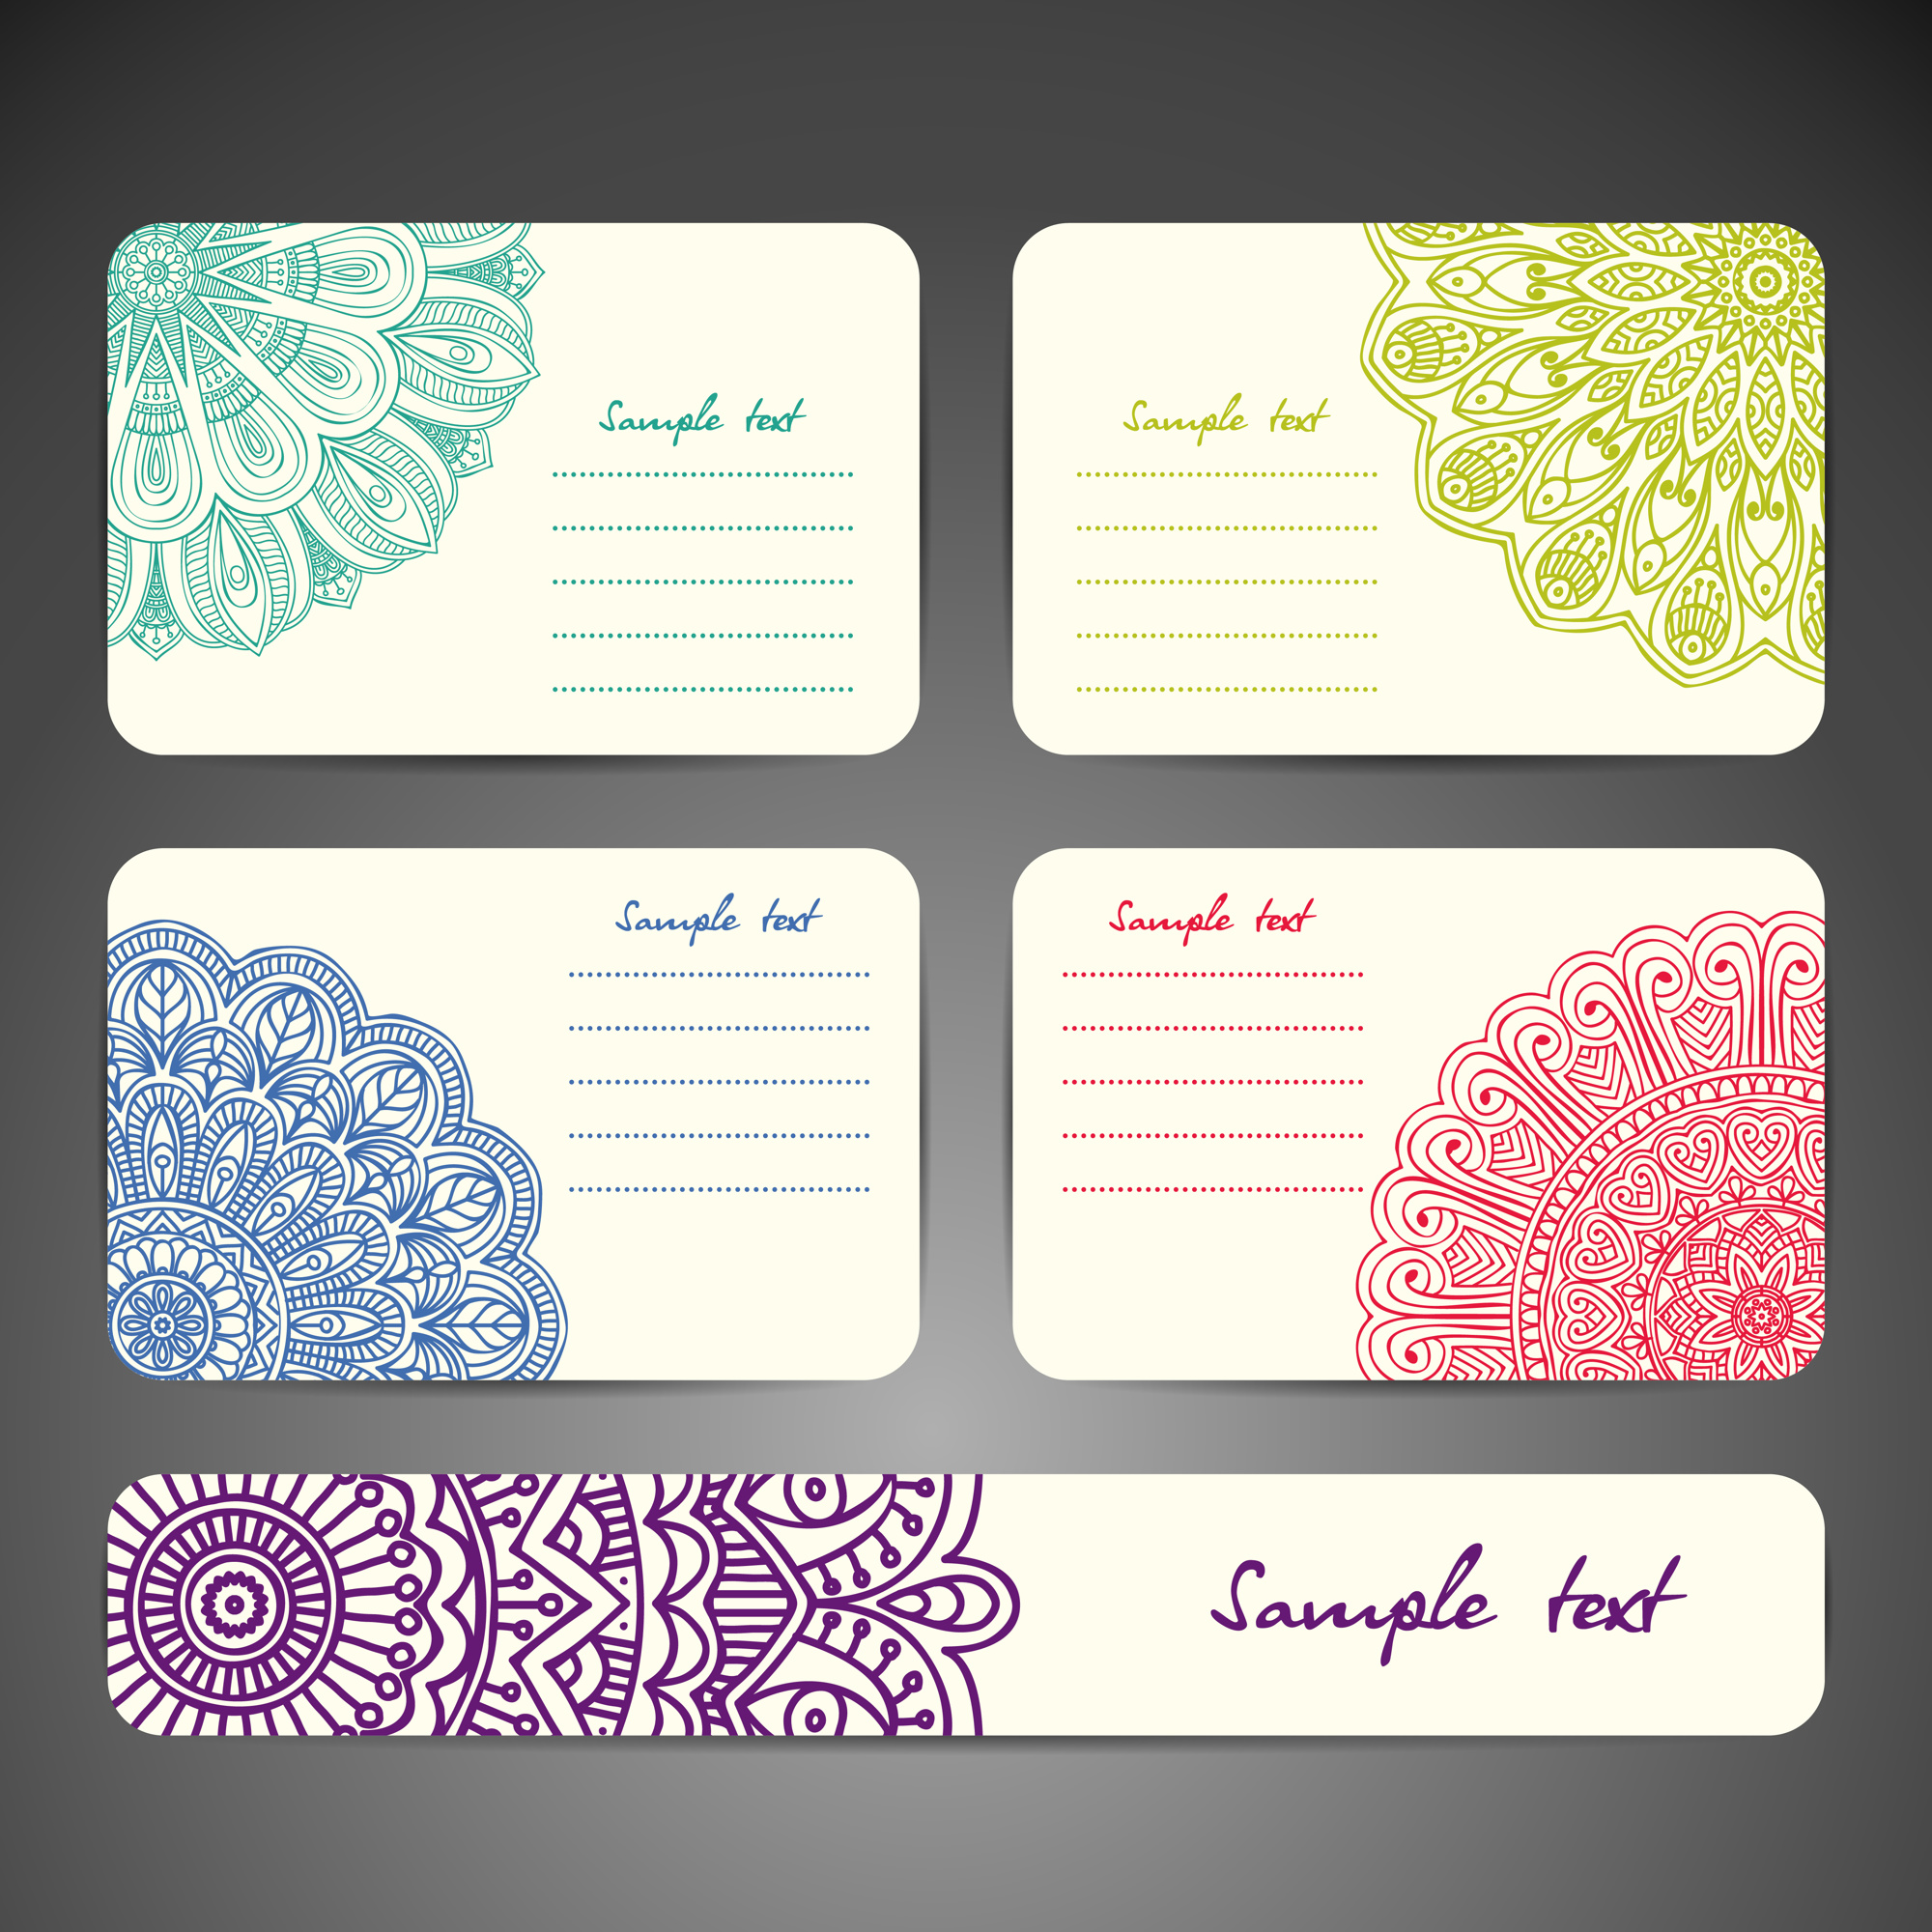 Ethnic stationery collection of four cards